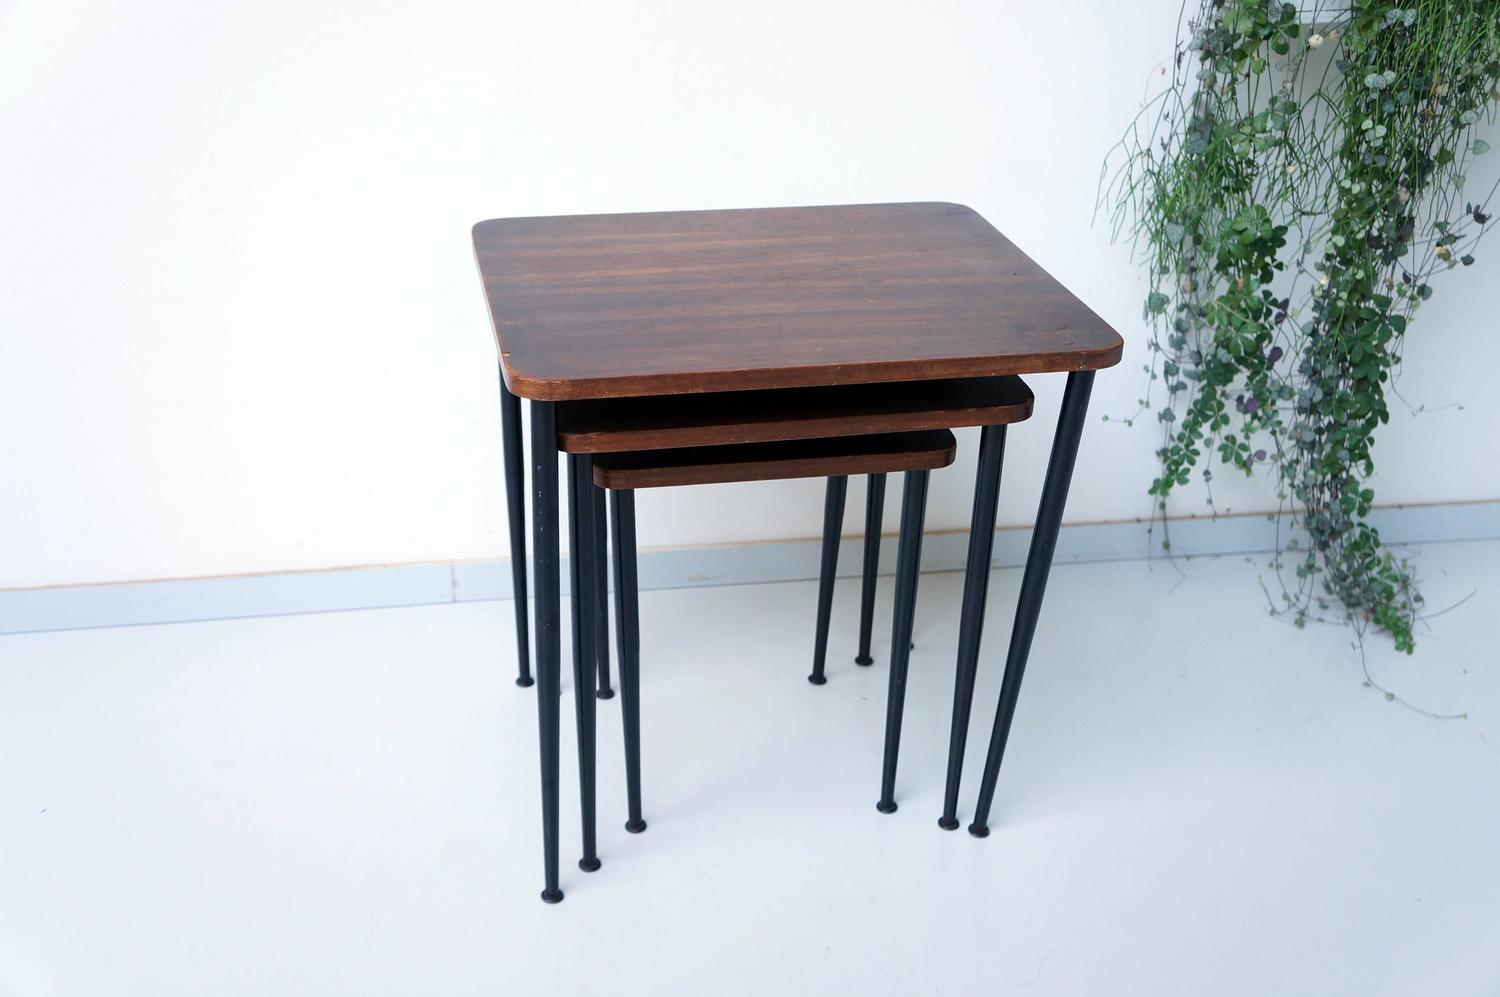 Teak Nesting Tables Black Metal 1960s At 1stdibs. Full resolution‎  image, nominally Width 1500 Height 997 pixels, image with #653A2D.